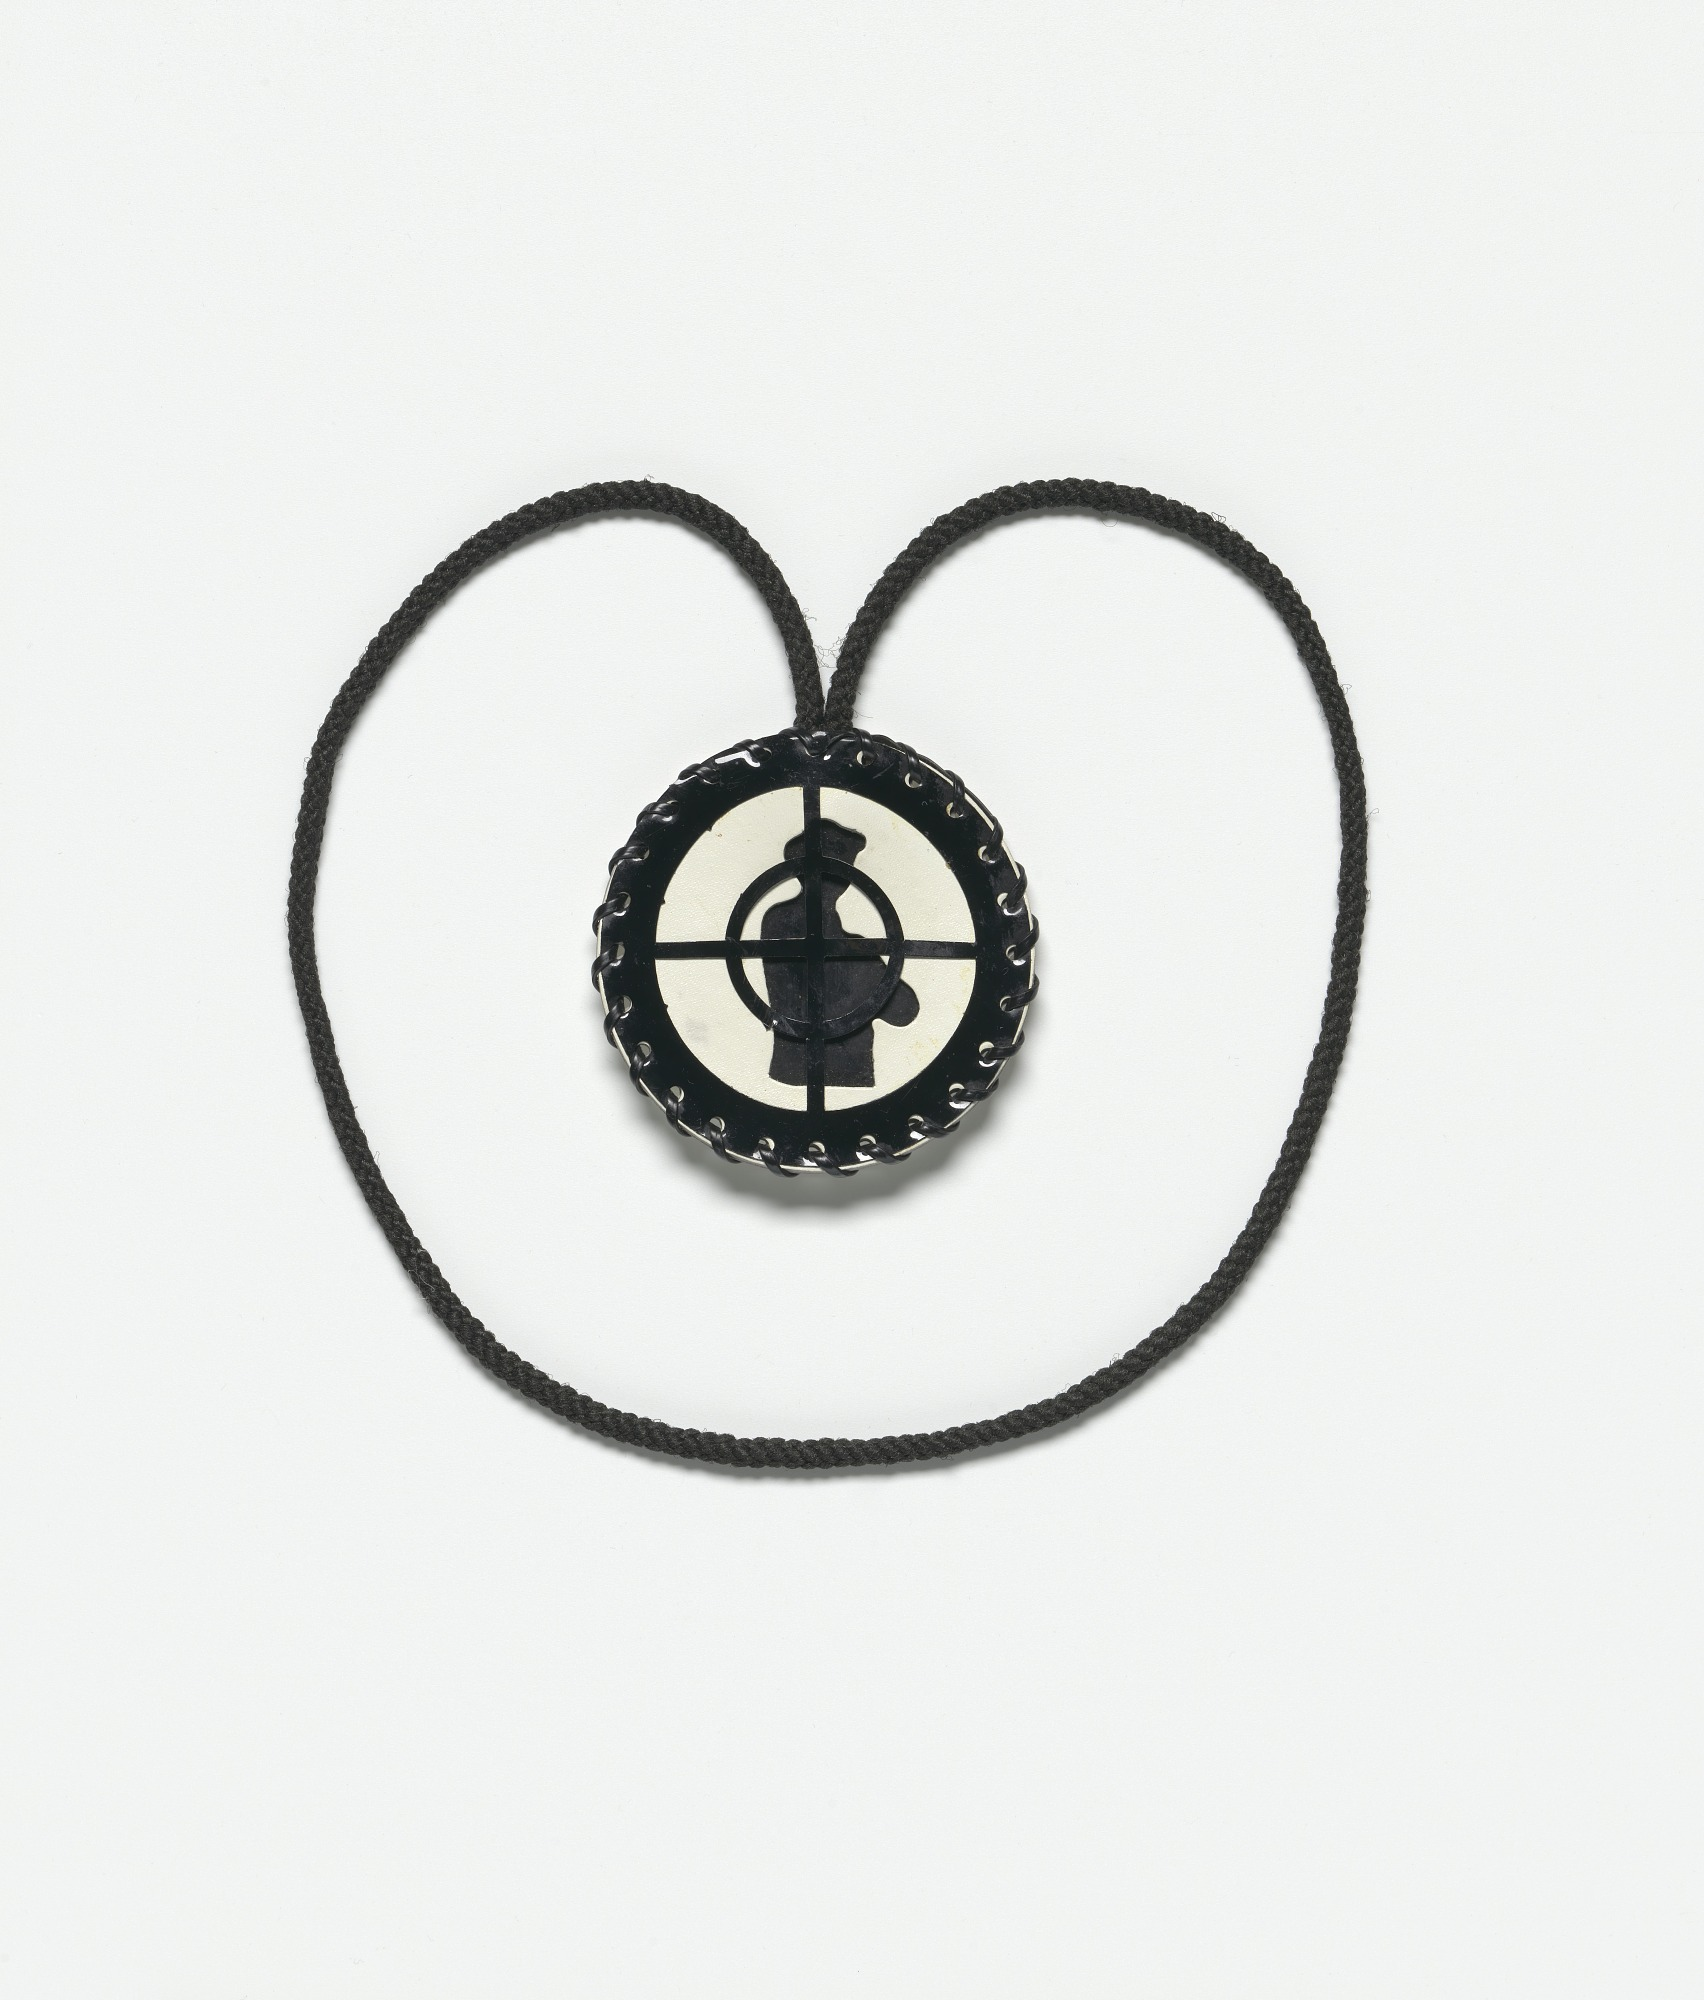 images for Public Enemy crosshairs logo necklace owned by Chuck D